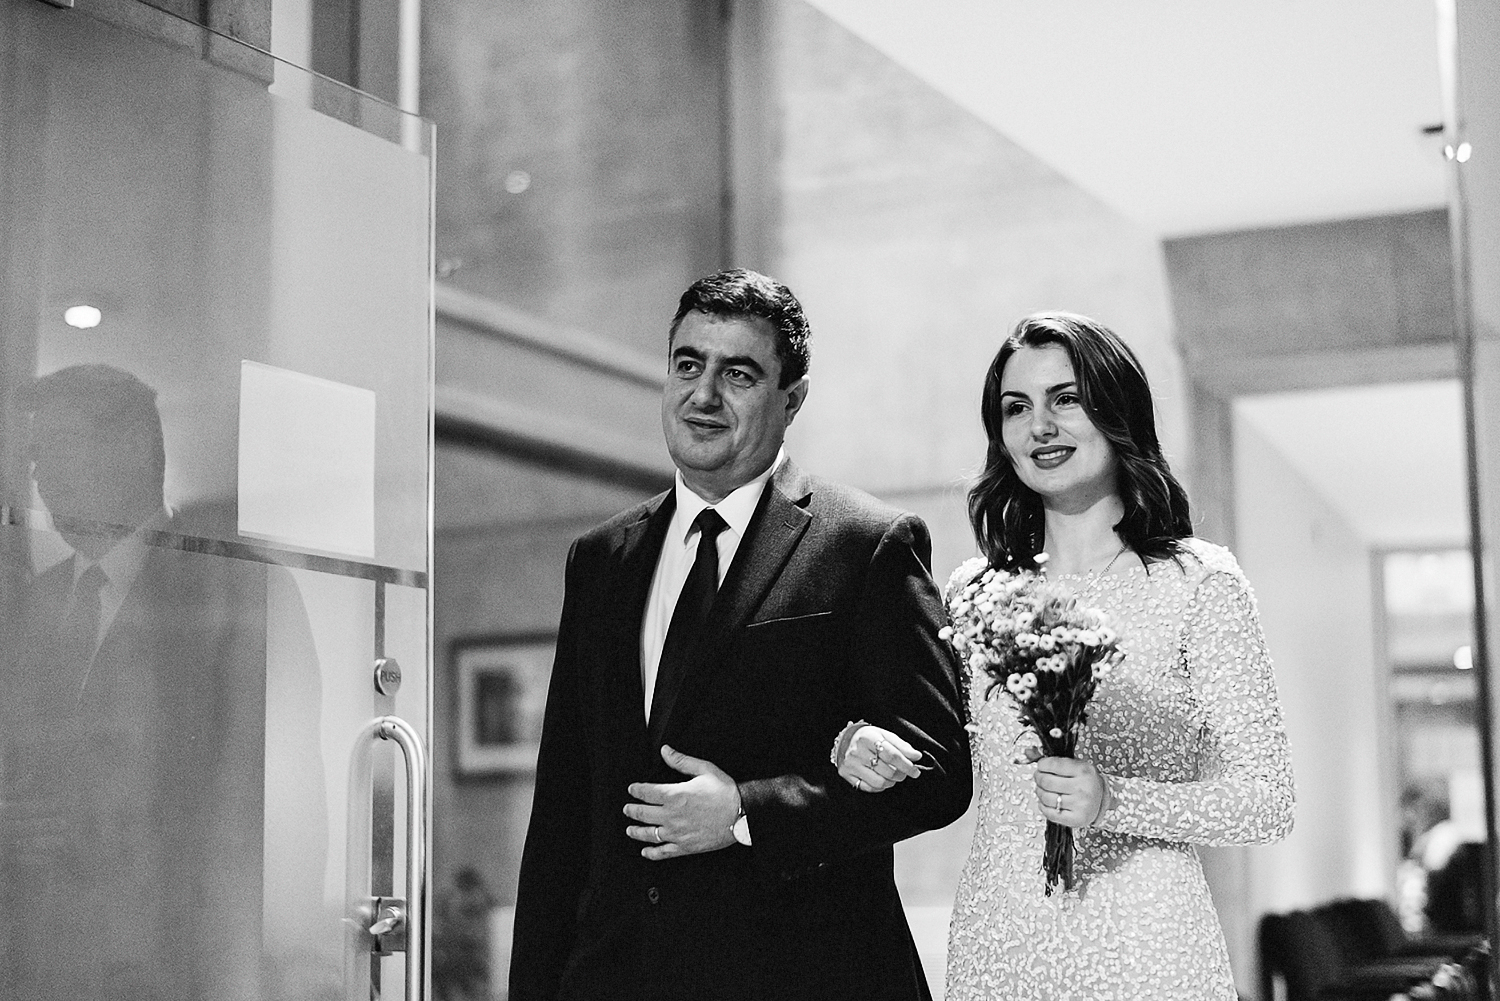 51-Best-Elopement-Photographers-Toronto-Fall-Wedding-Elopement-Modern-Vintage-Hipster-Bride-and-groom-entrance.JPG